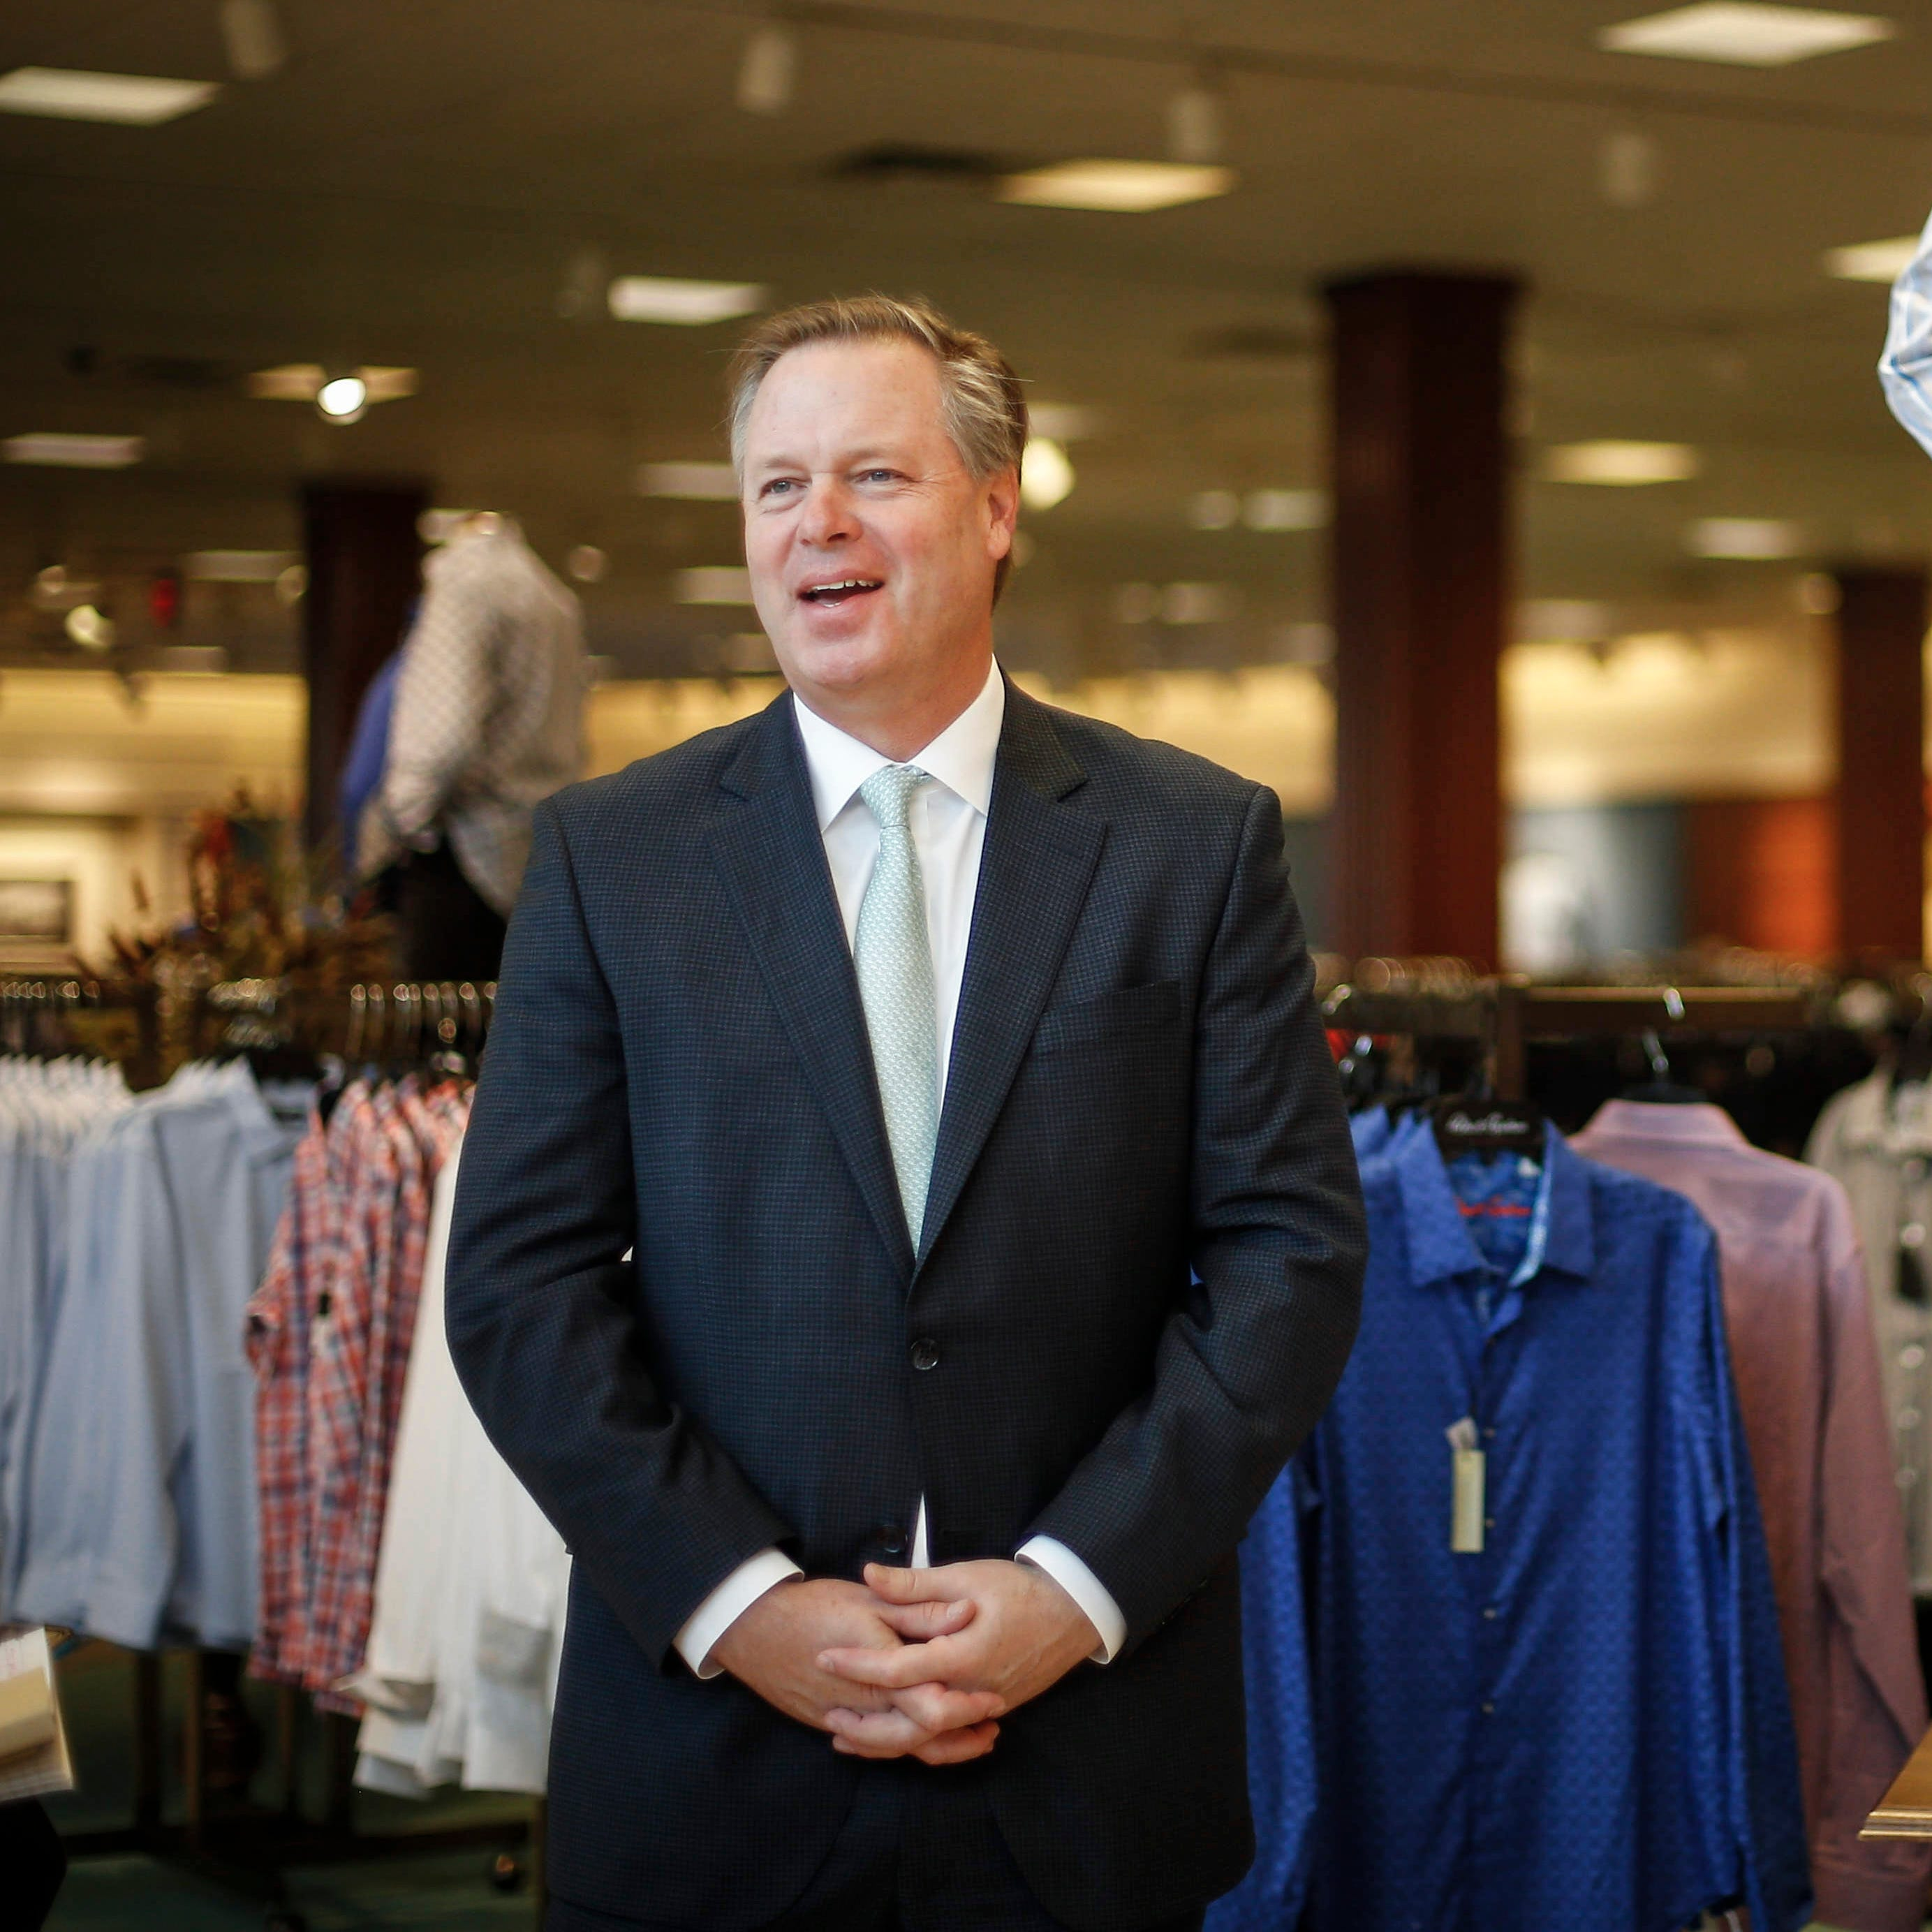 Von Maur hitting its stride while 'retail apocalypse' rattles brick-and-mortar peers